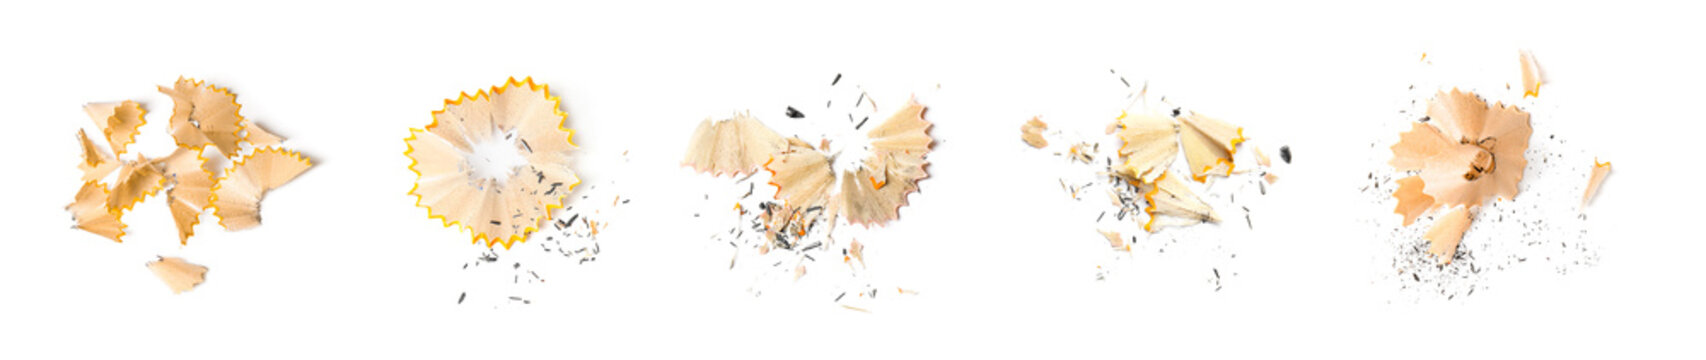 Pencil shavings on white background, top view. Banner design